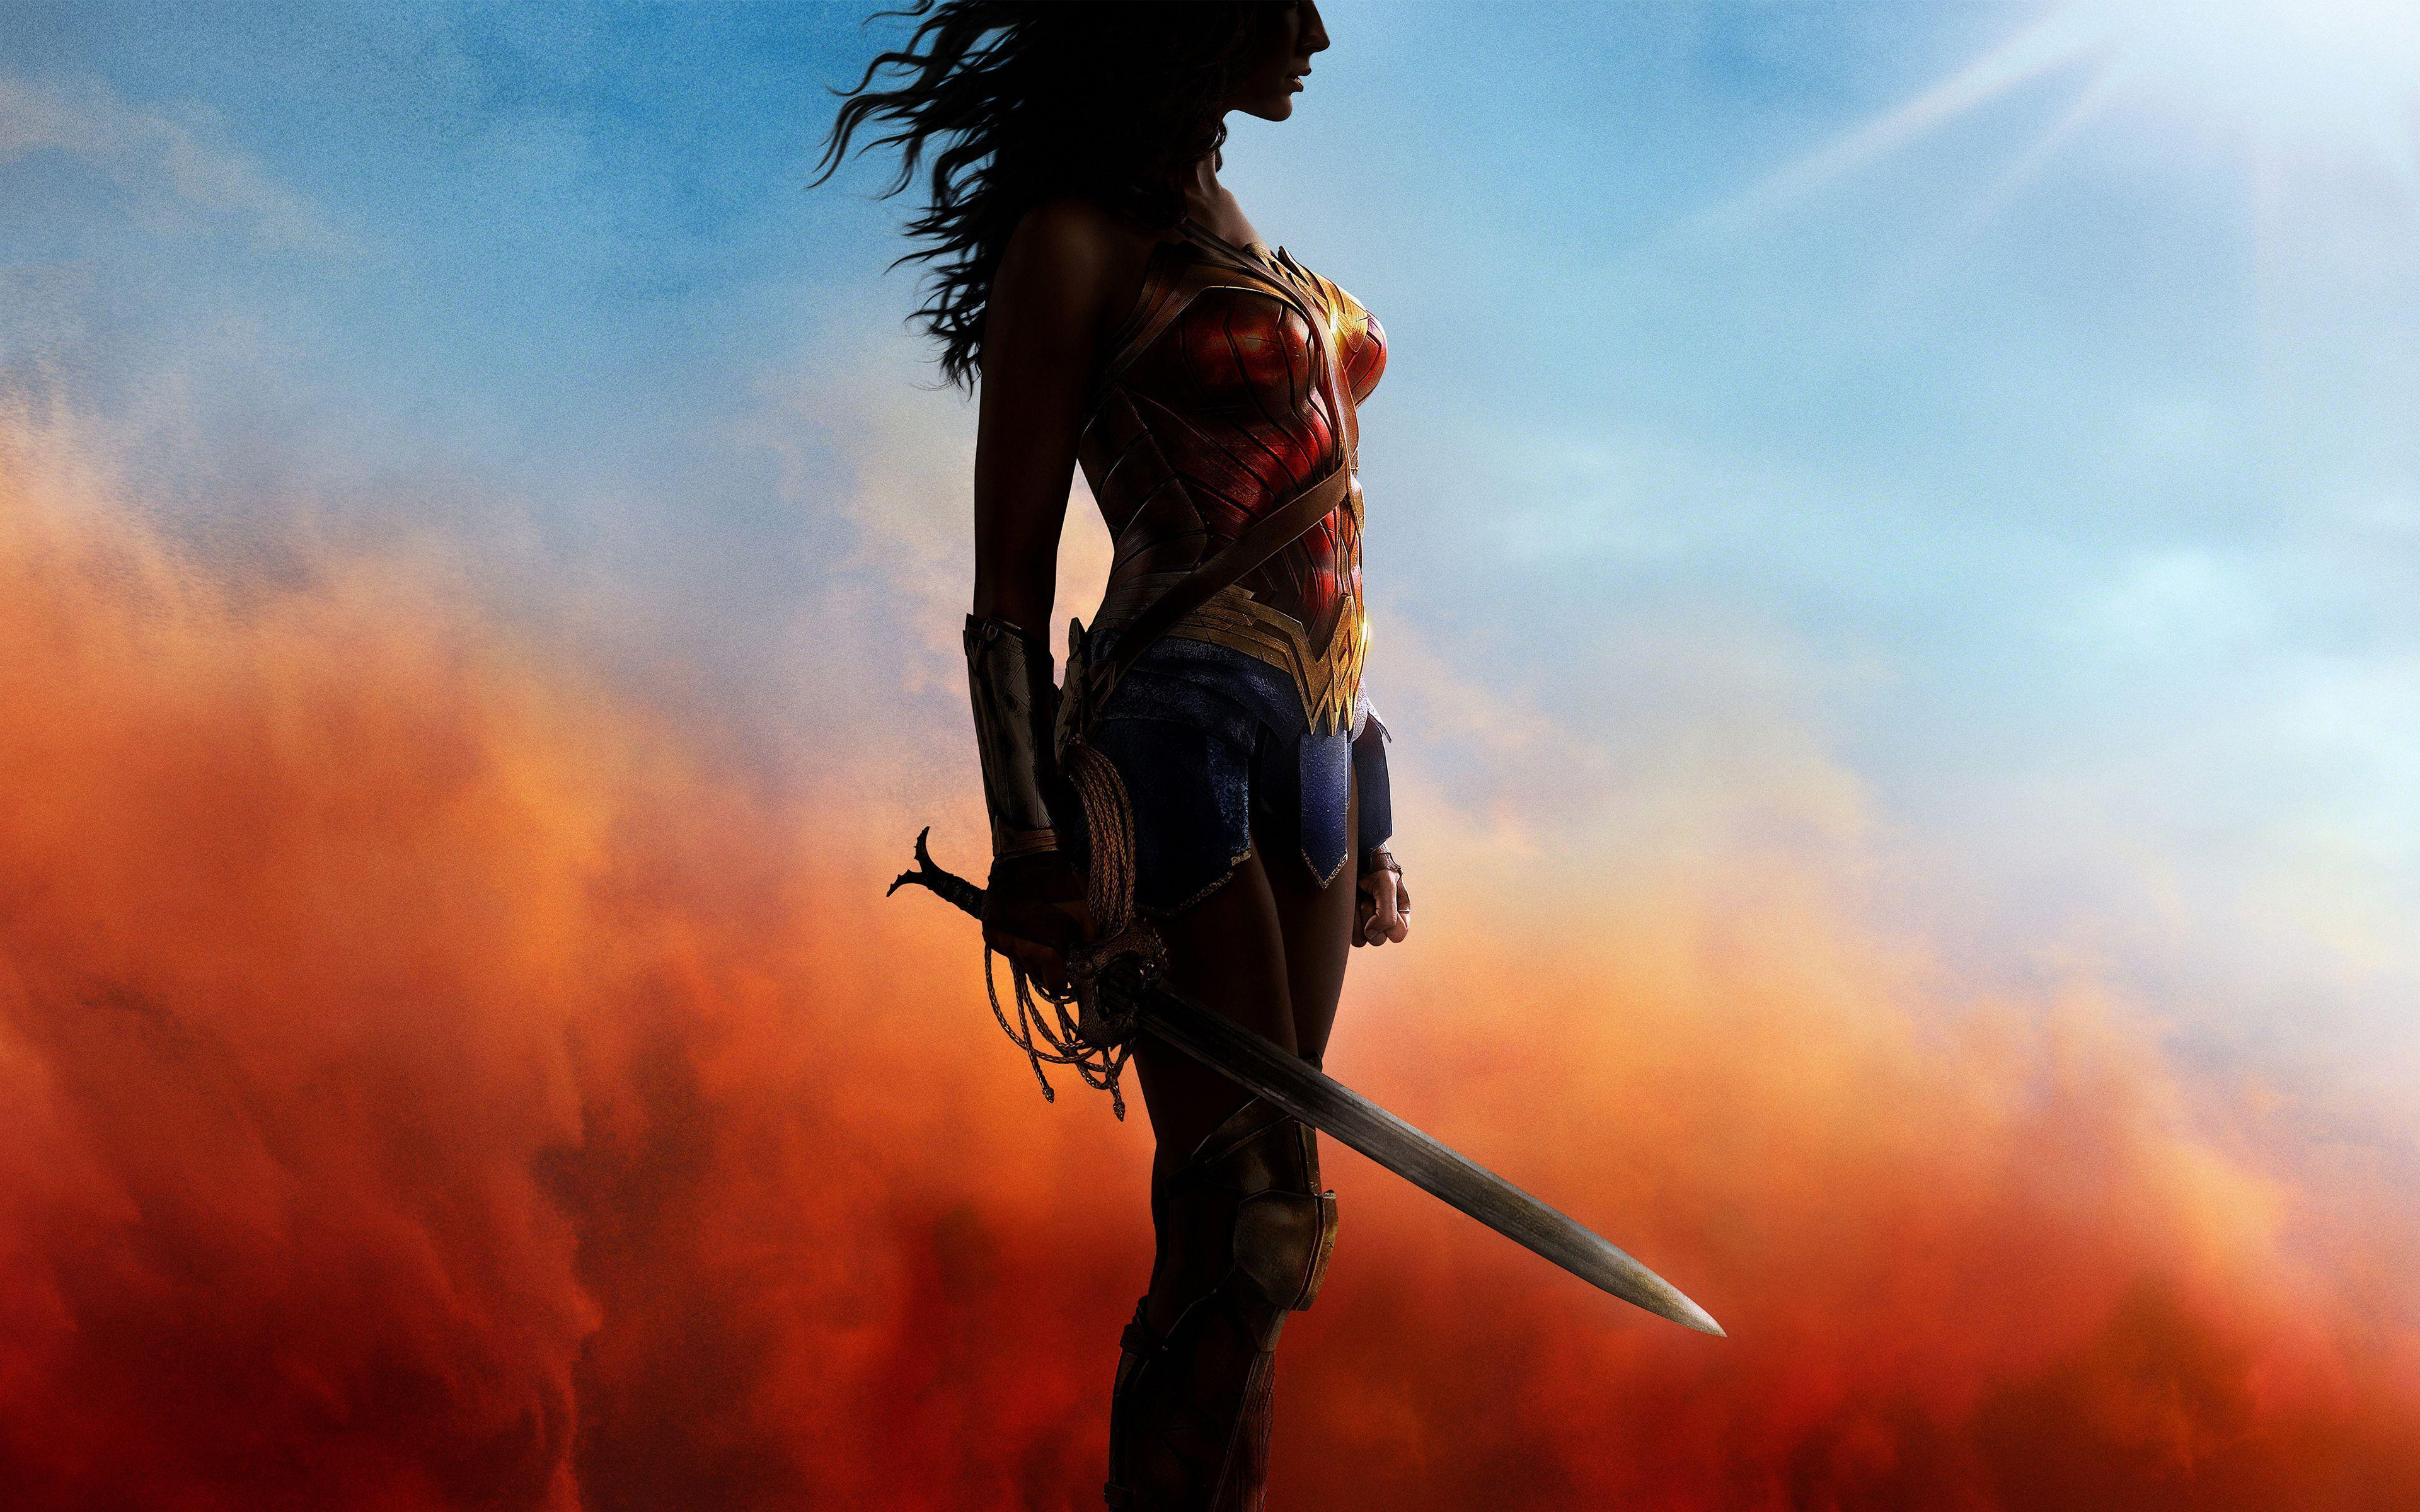 2017 Wonder Woman Wallpapers | HD Wallpapers